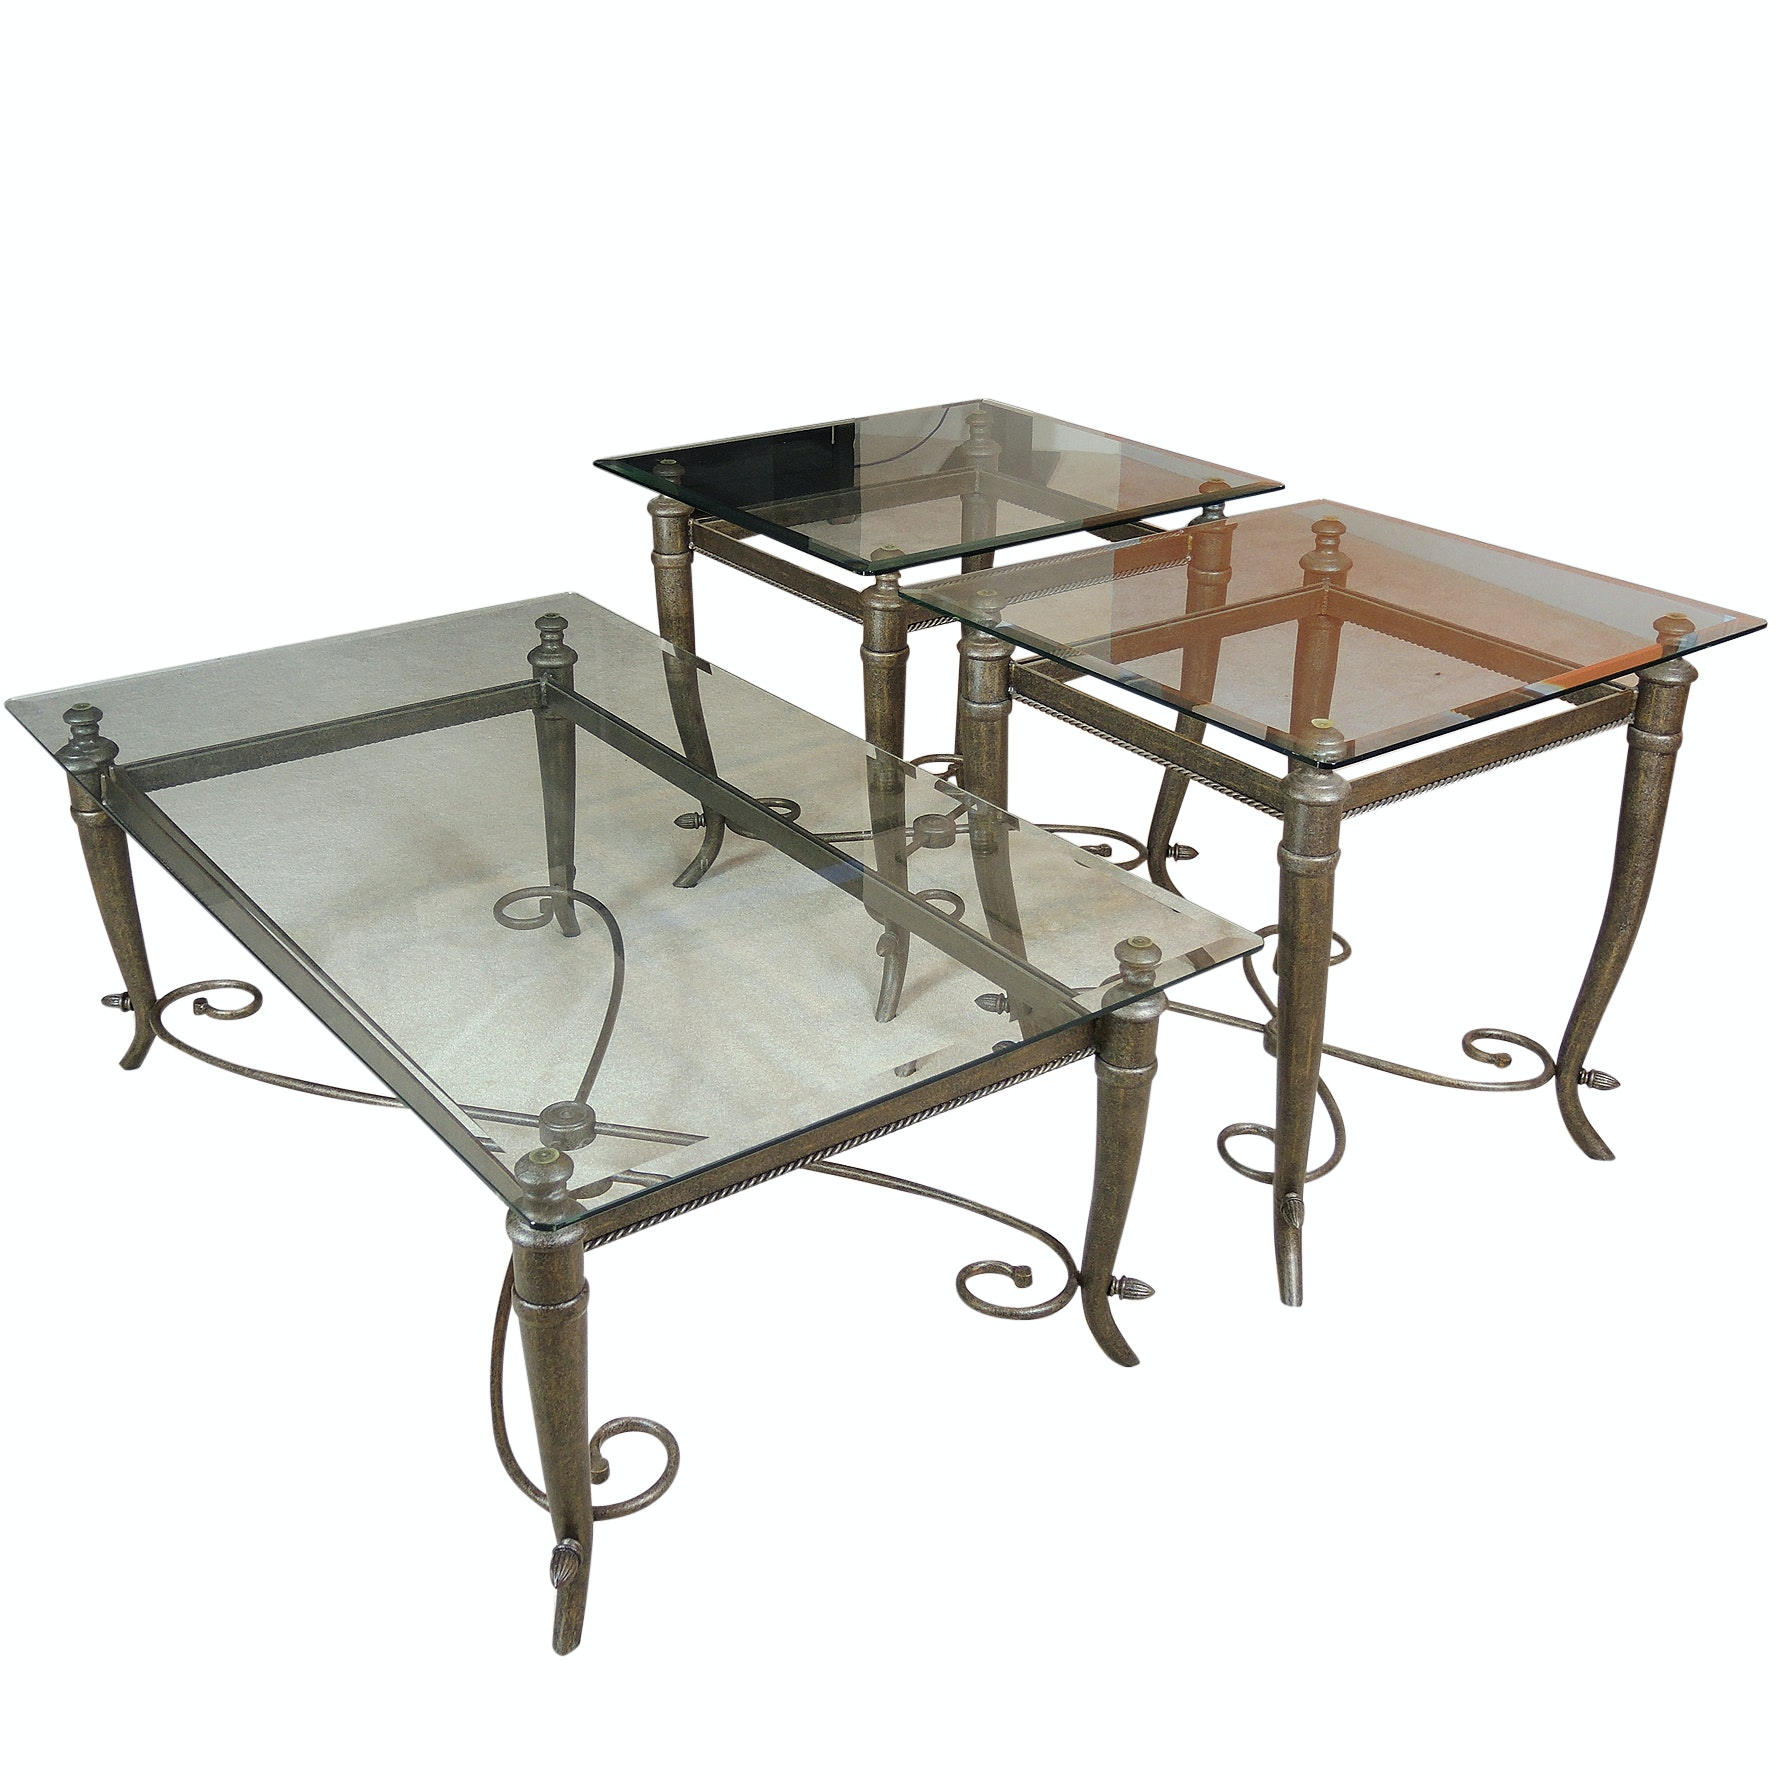 Contemporary Glass and Metal Tables